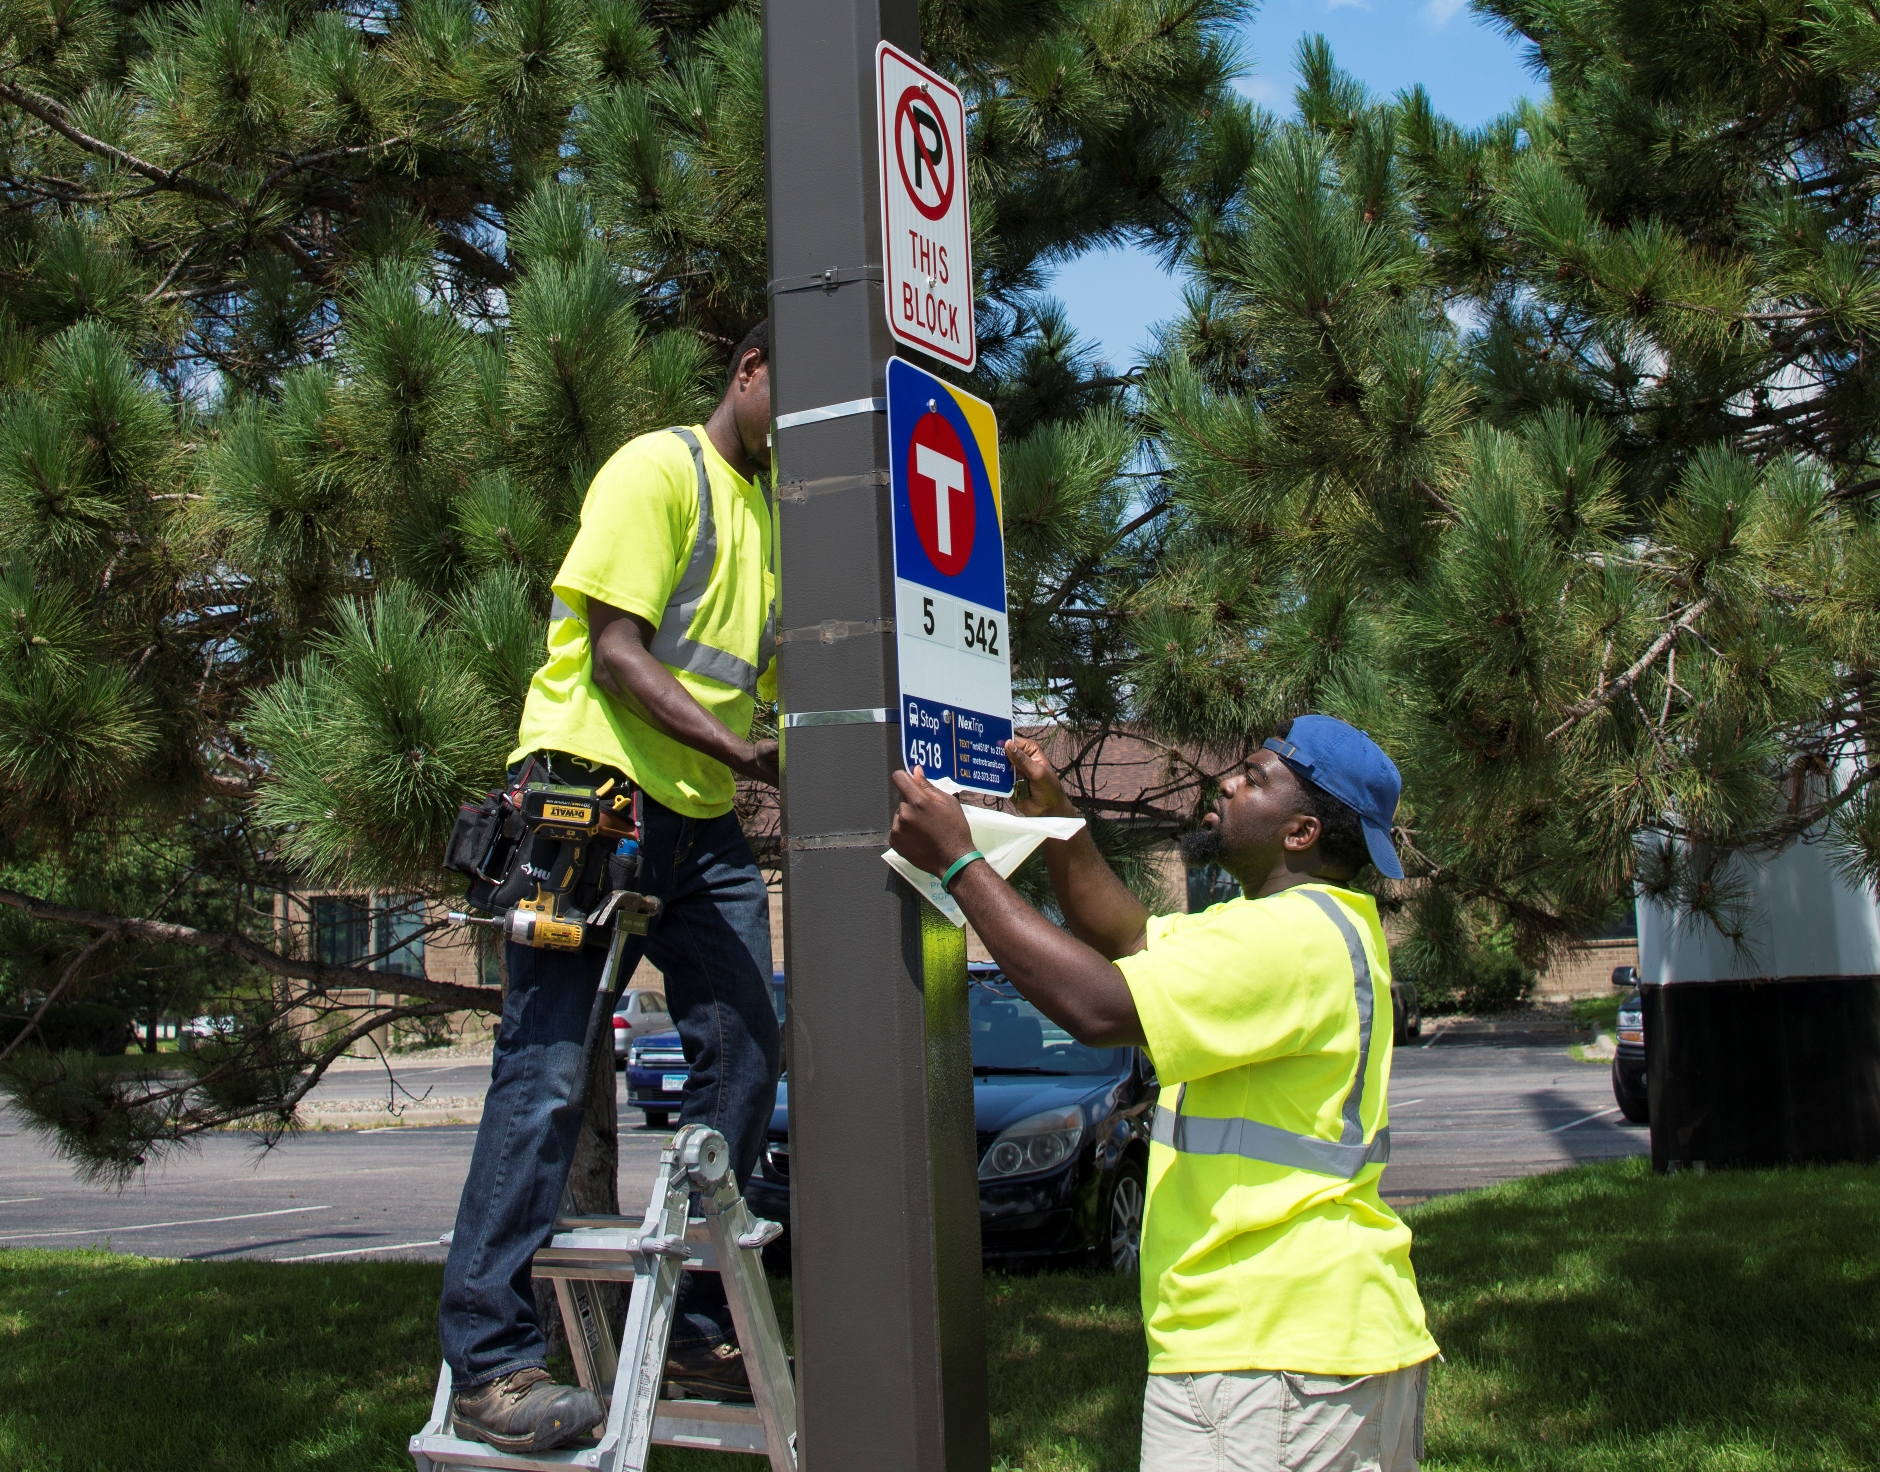 A new bus stop sign is installed on American Boulevard.